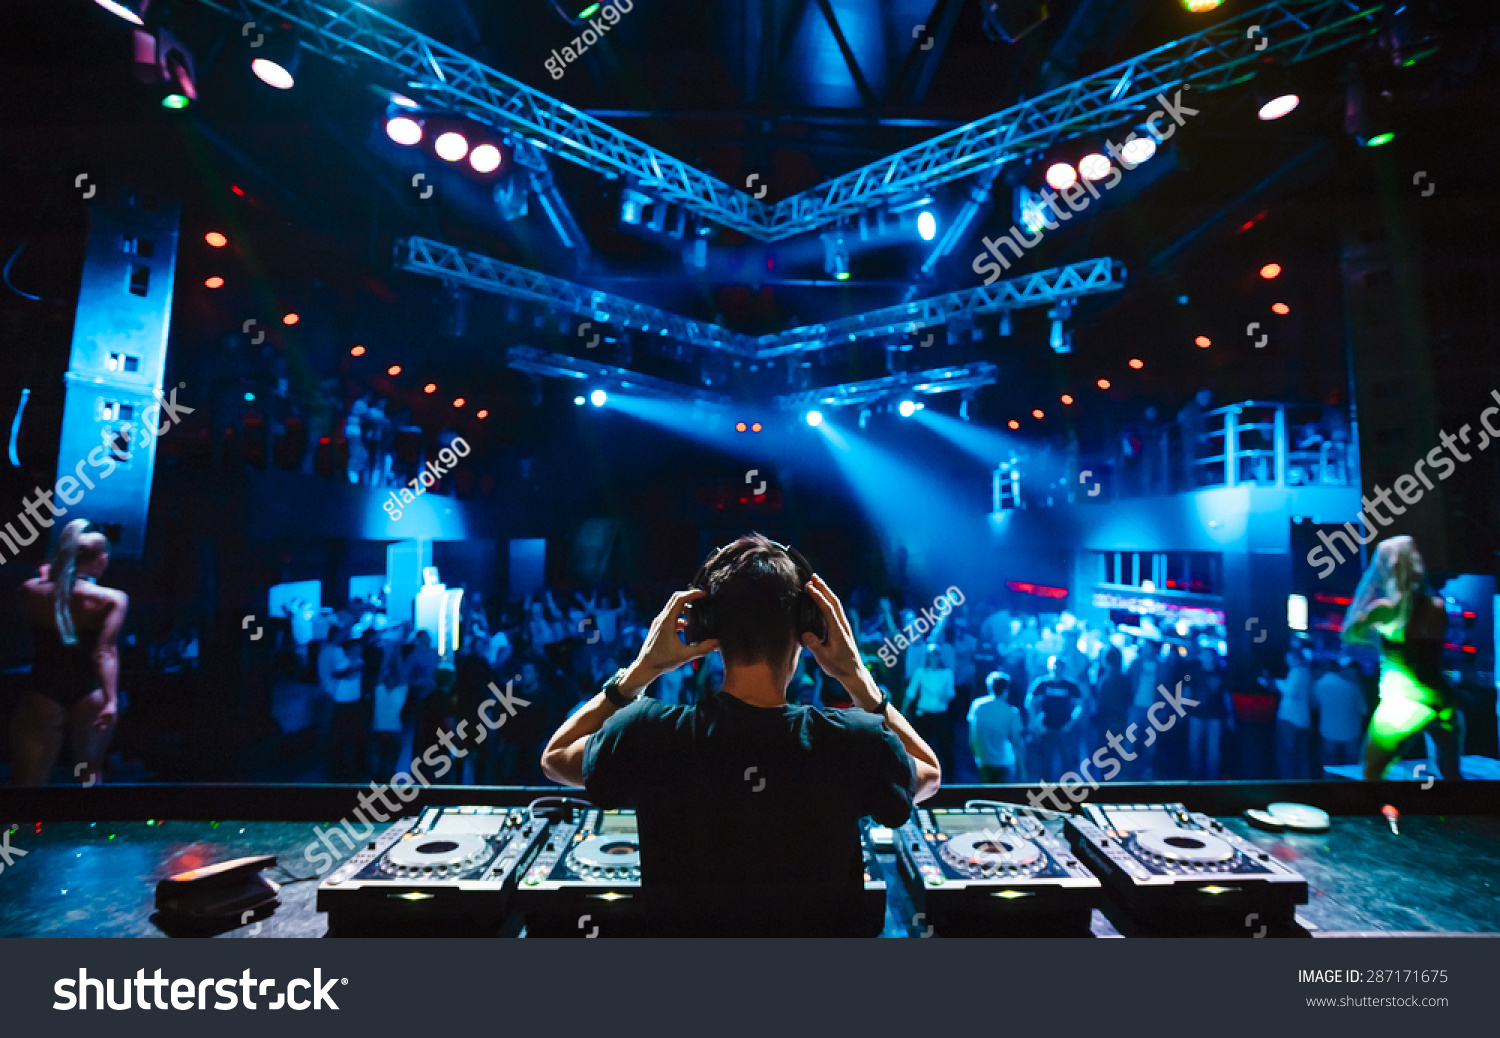 Dj Headphones Night Club Party Under Stock Photo 287171675